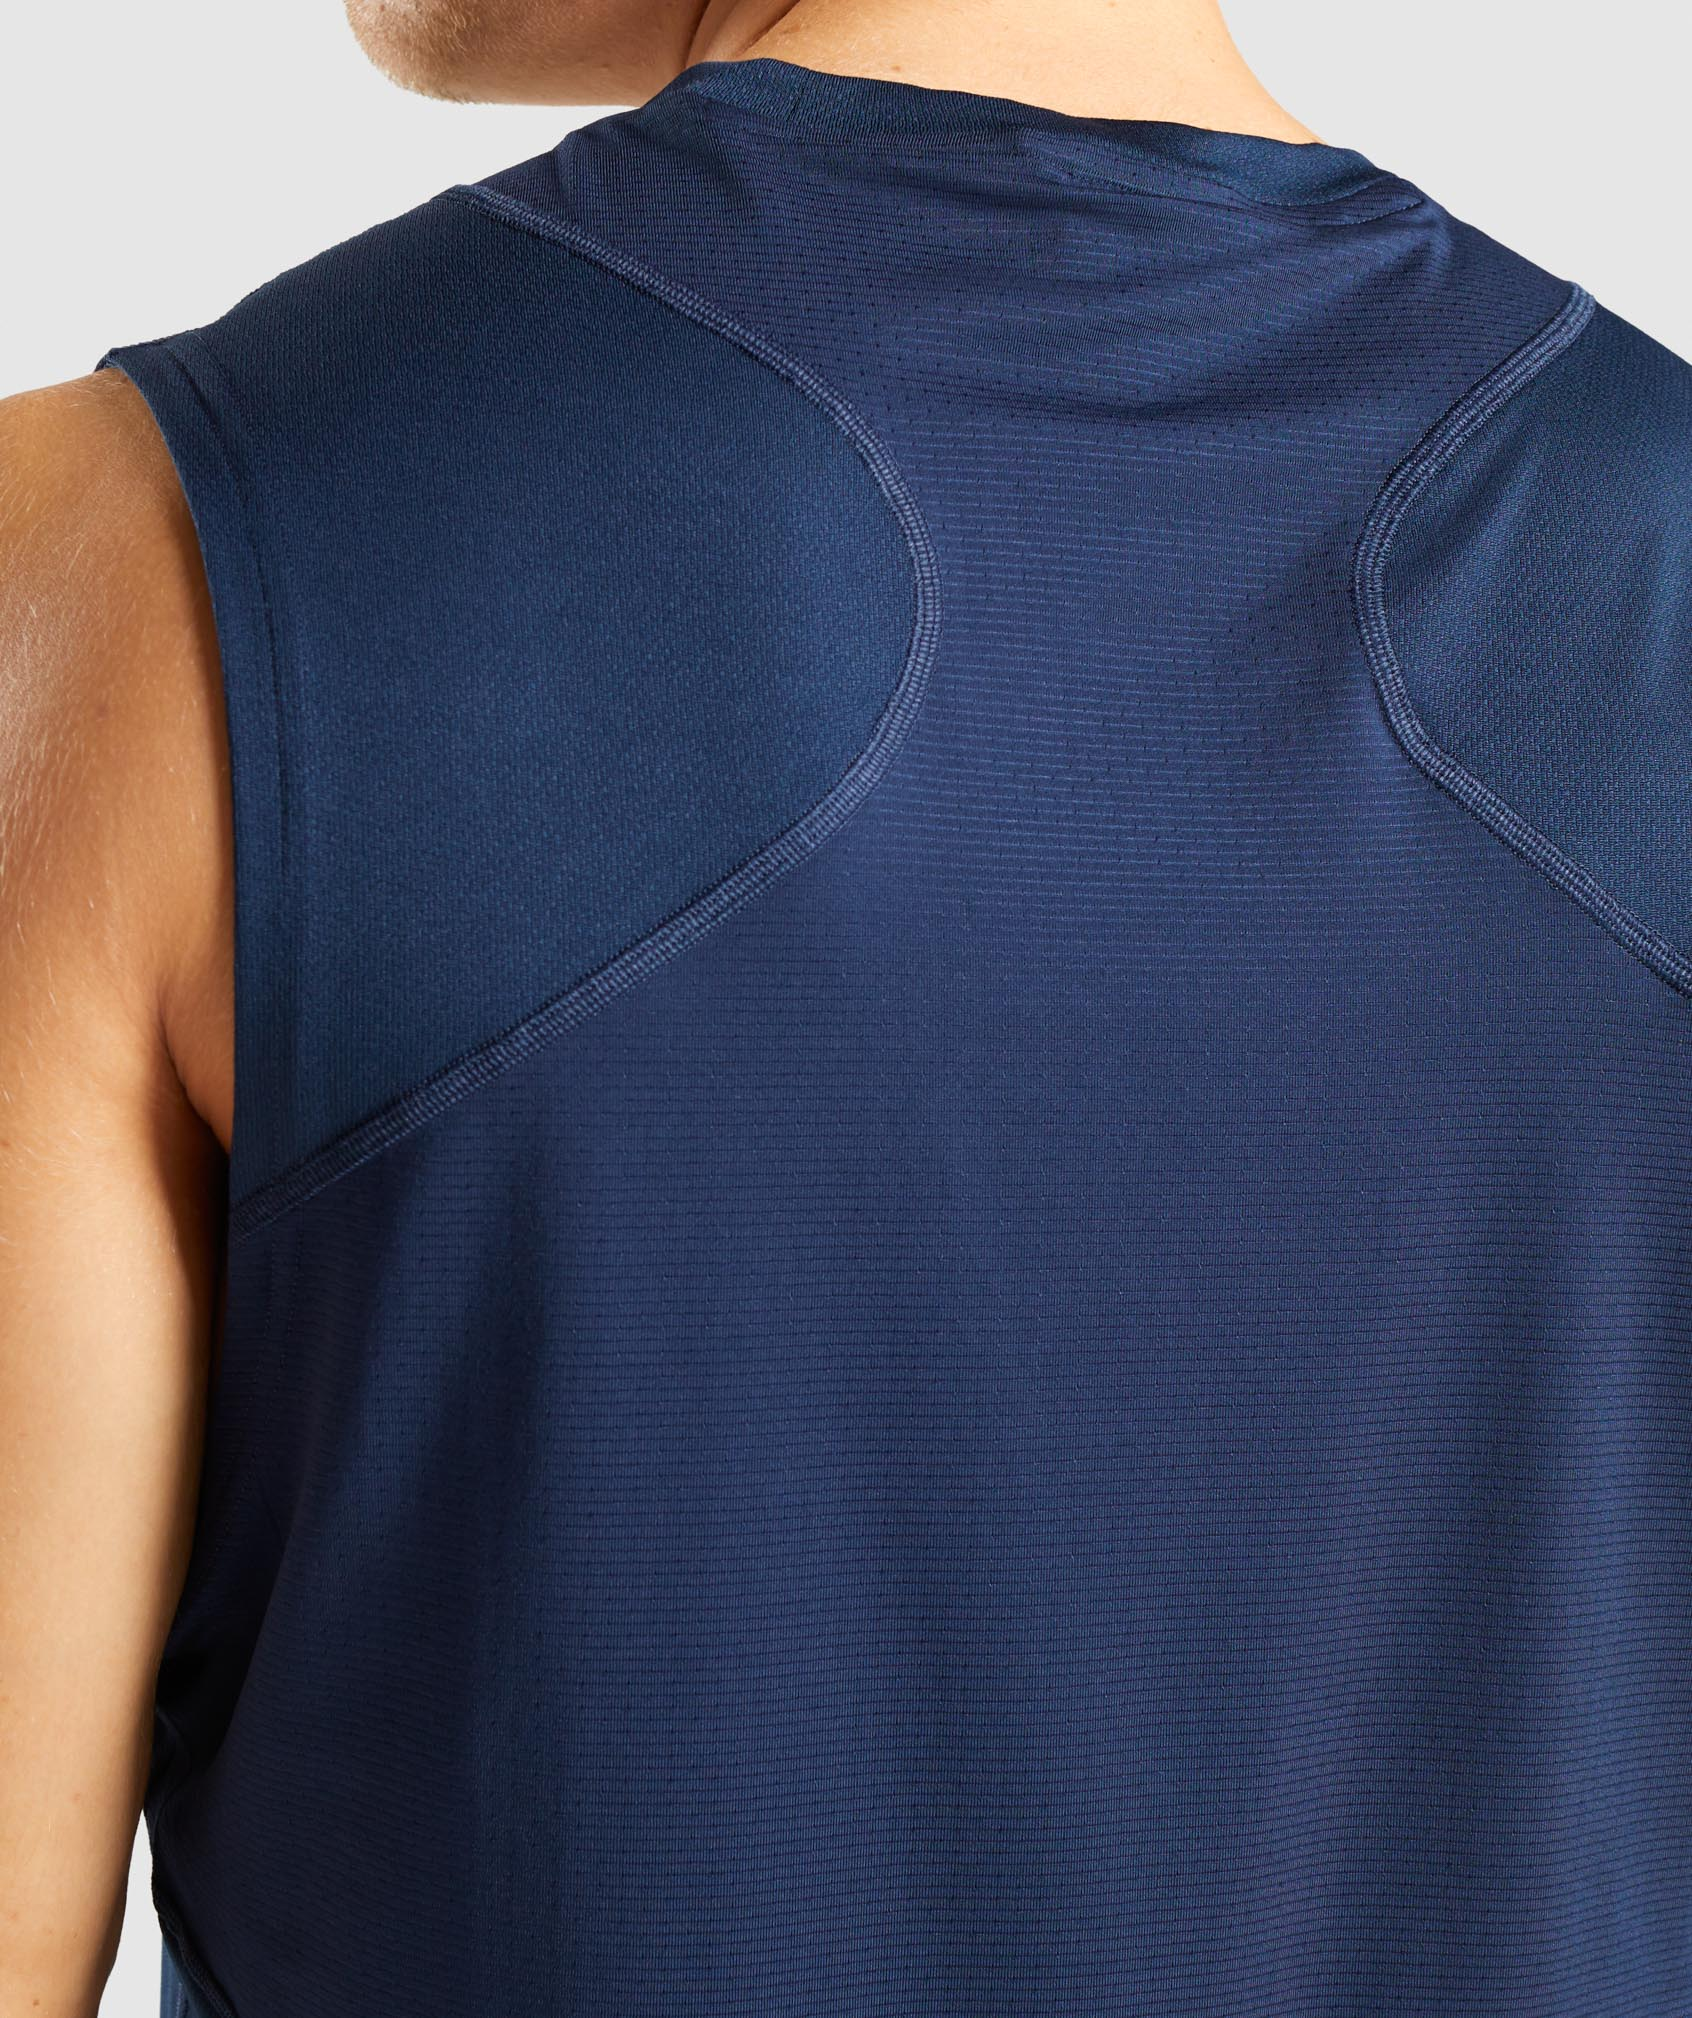 Classier: Buy Gymshark Speed Tank - Navy - Gymshark